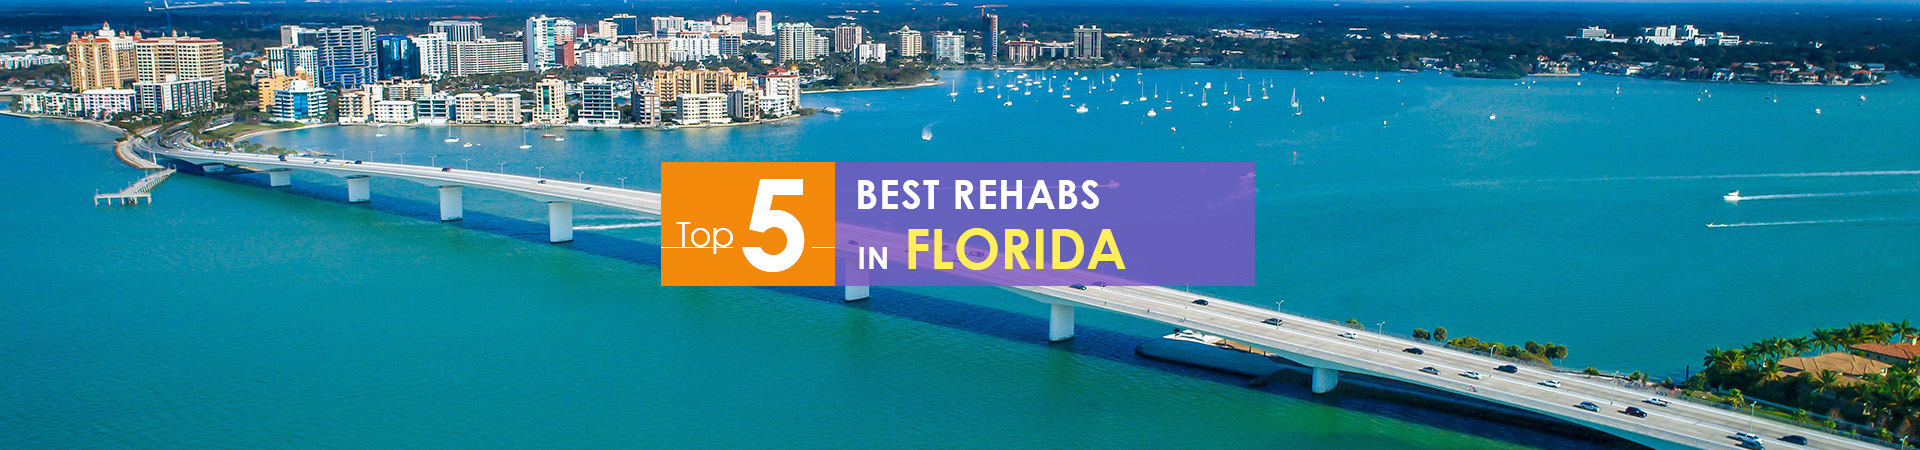 Florida beach view and top 5 rehabs caption